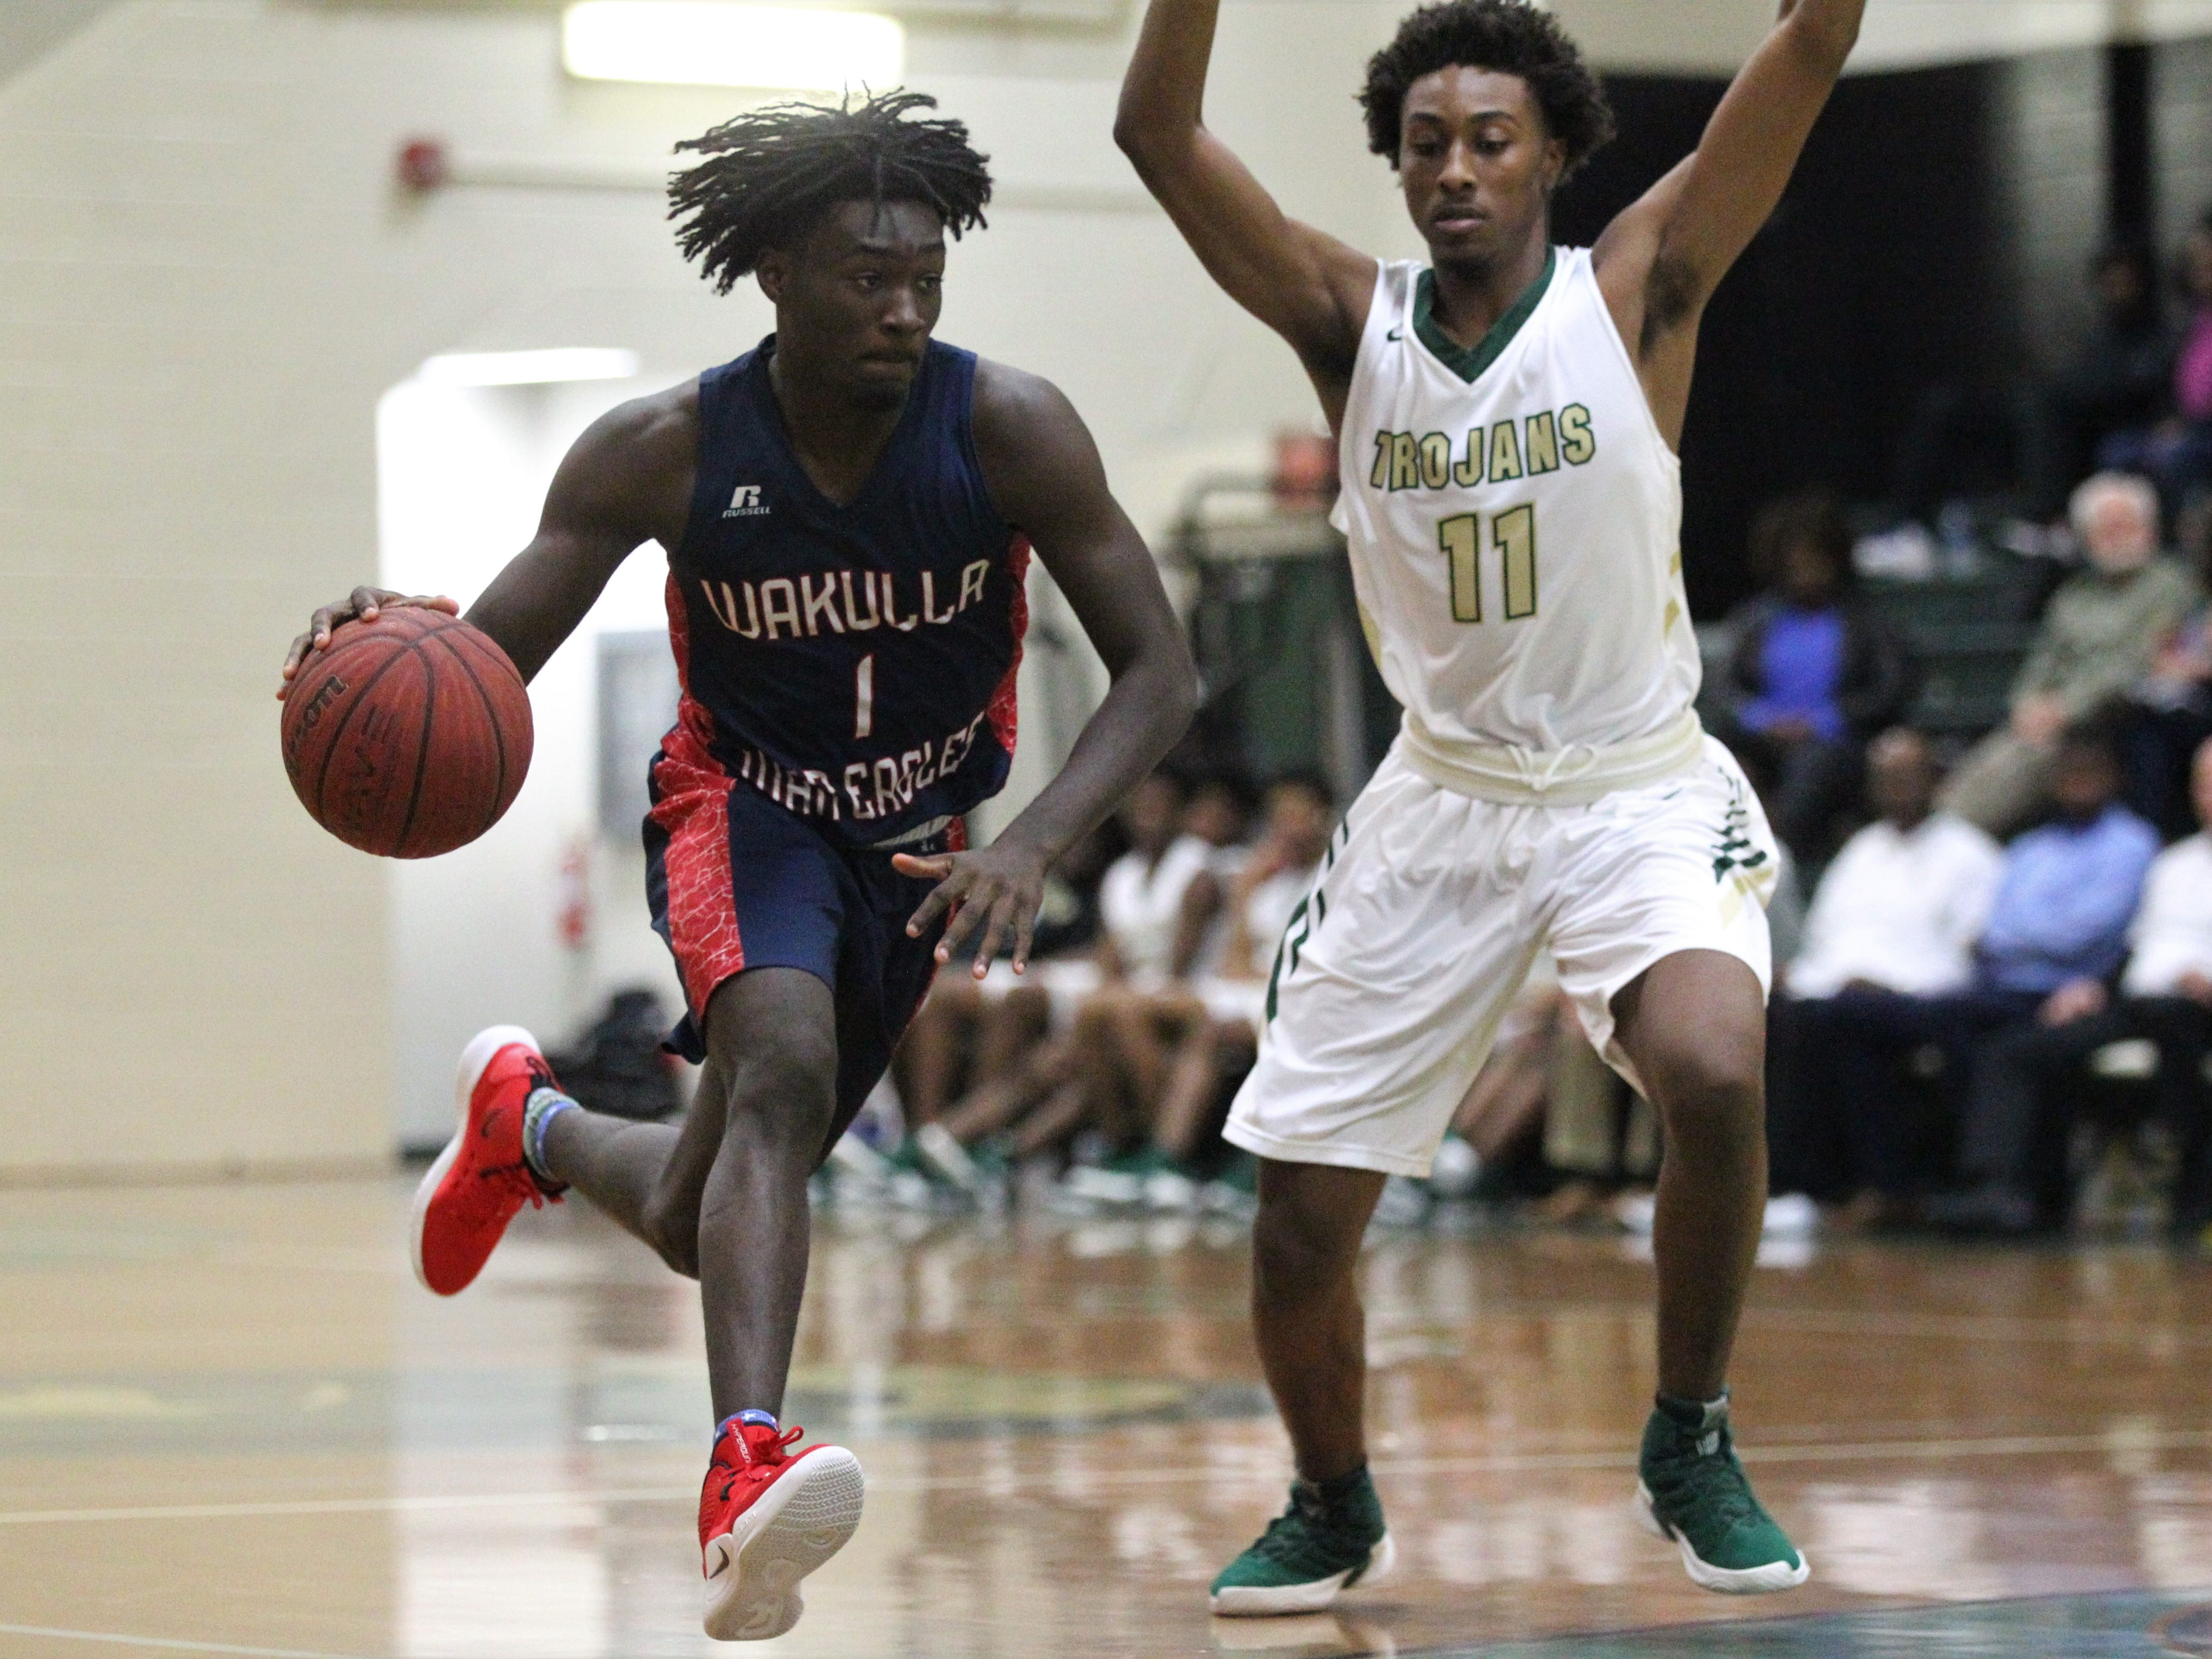 Wakulla's Quez Allen brings the ball up the court as Lincoln's Jaleel Howard guards during a game at Lincoln on Jan. 10, 2019.